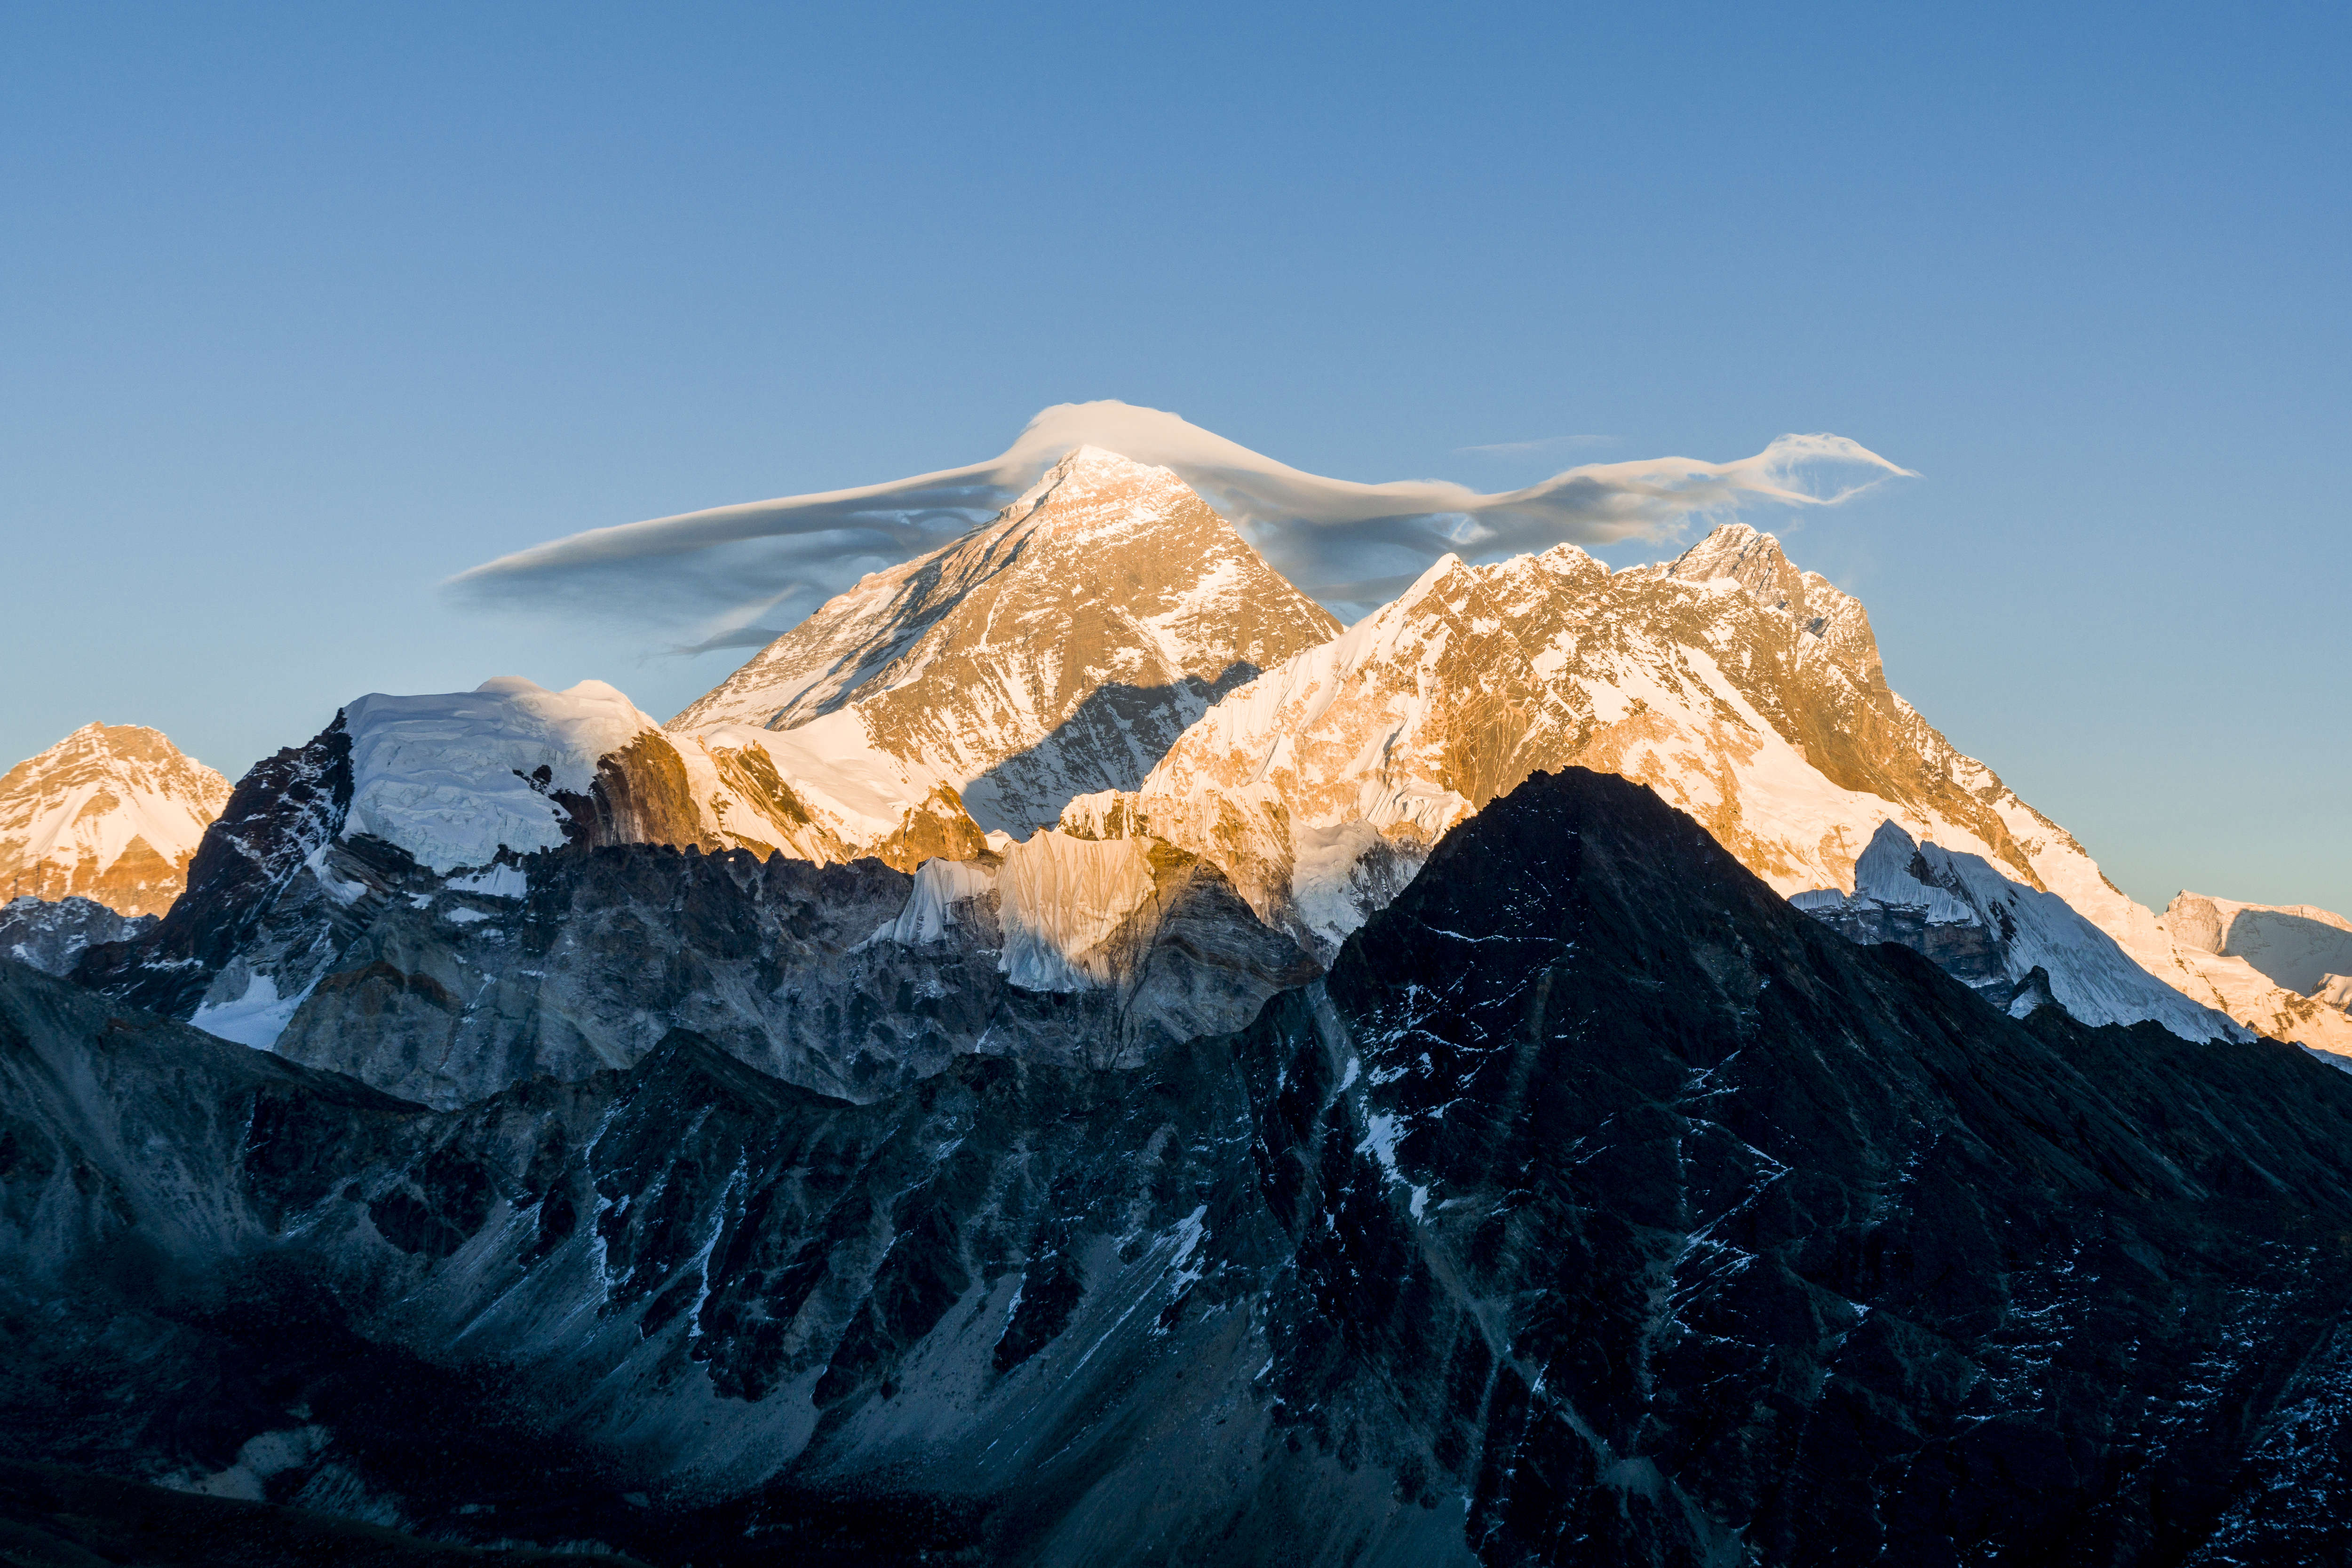 The mountain Mt. Everest (8848m) with a white cloud on top, seen from Gokyo Ri (5360m) at sunset.